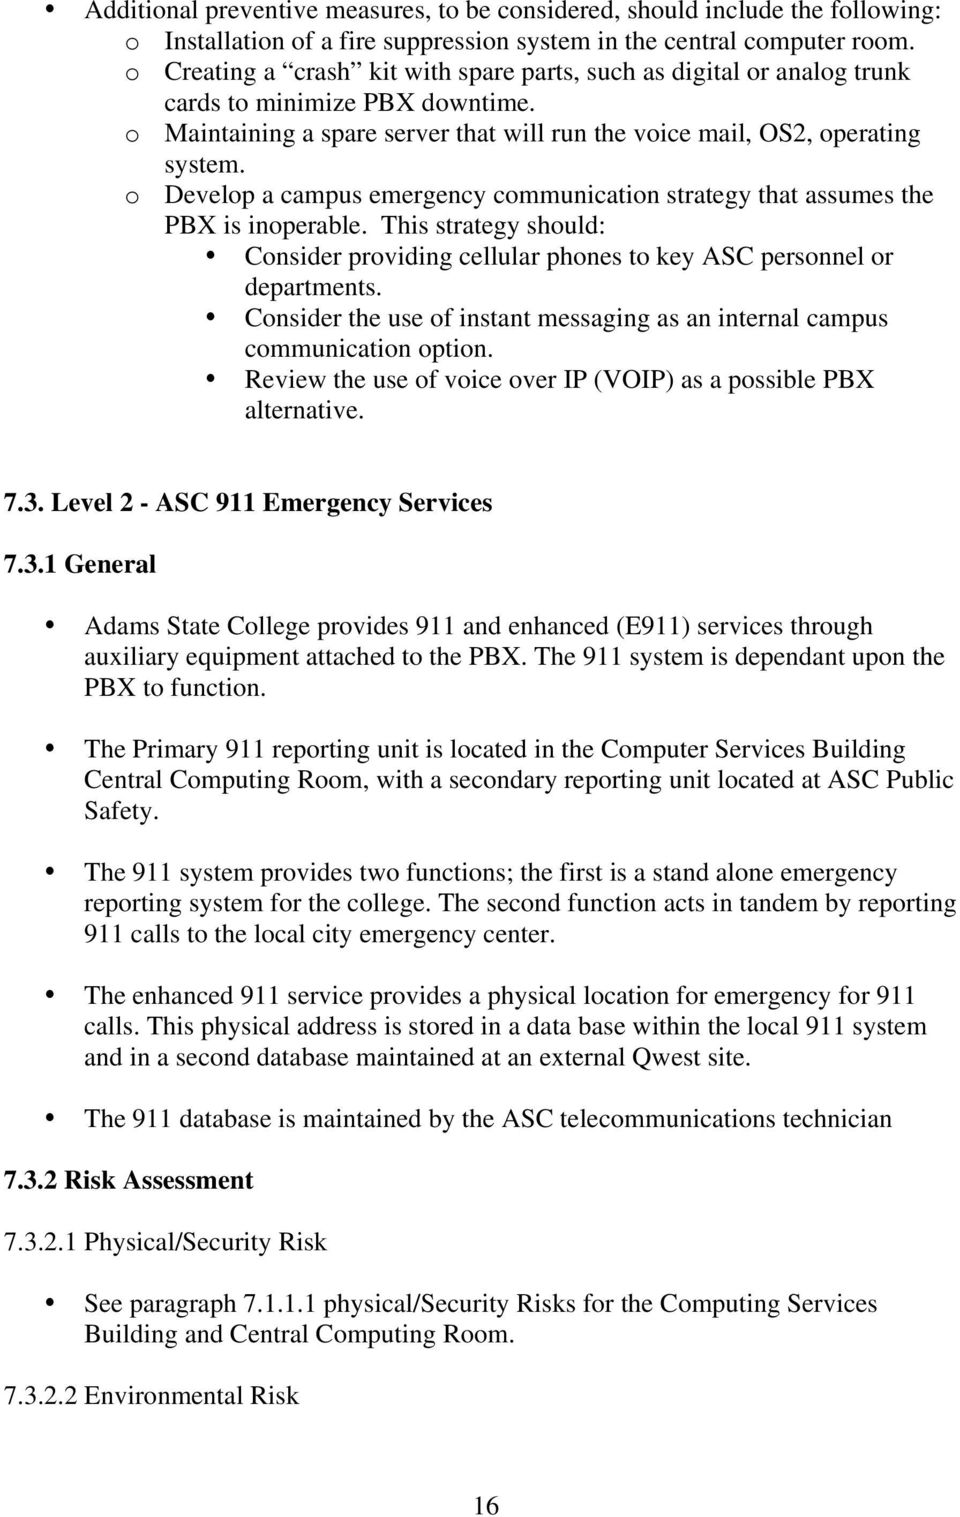 o Develop a campus emergency communication strategy that assumes the PBX is inoperable. This strategy should: Consider providing cellular phones to key ASC personnel or departments.